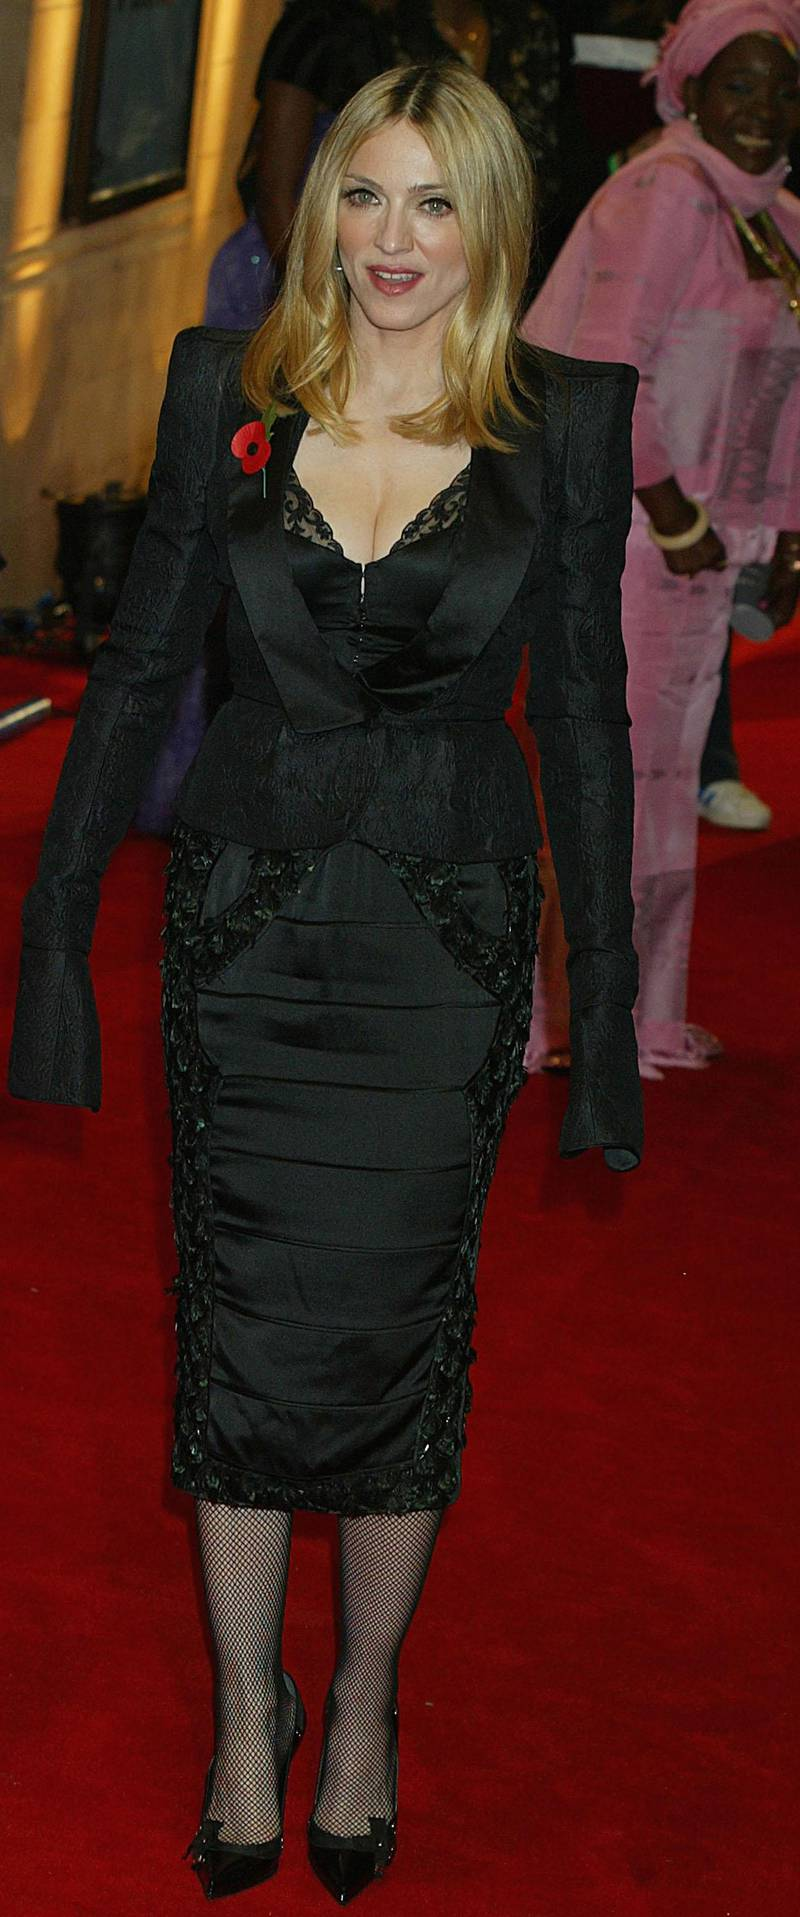 """LONDON -  NOVEMBER 11: Madonna arrives at the final of """"UK Music Hall Of Fame"""", the Channel 4 series looking at popular music from the 1950's to the 1990's, at the Hackney Empire on November 11, 2004 in London. Jamie Theakston has, for the past few weeks, been asking the public to vote on who should enter Channel 4's Hall Of Fame, and the winners are inducted this evening. (Photo by Jo Hale/Getty Images)"""